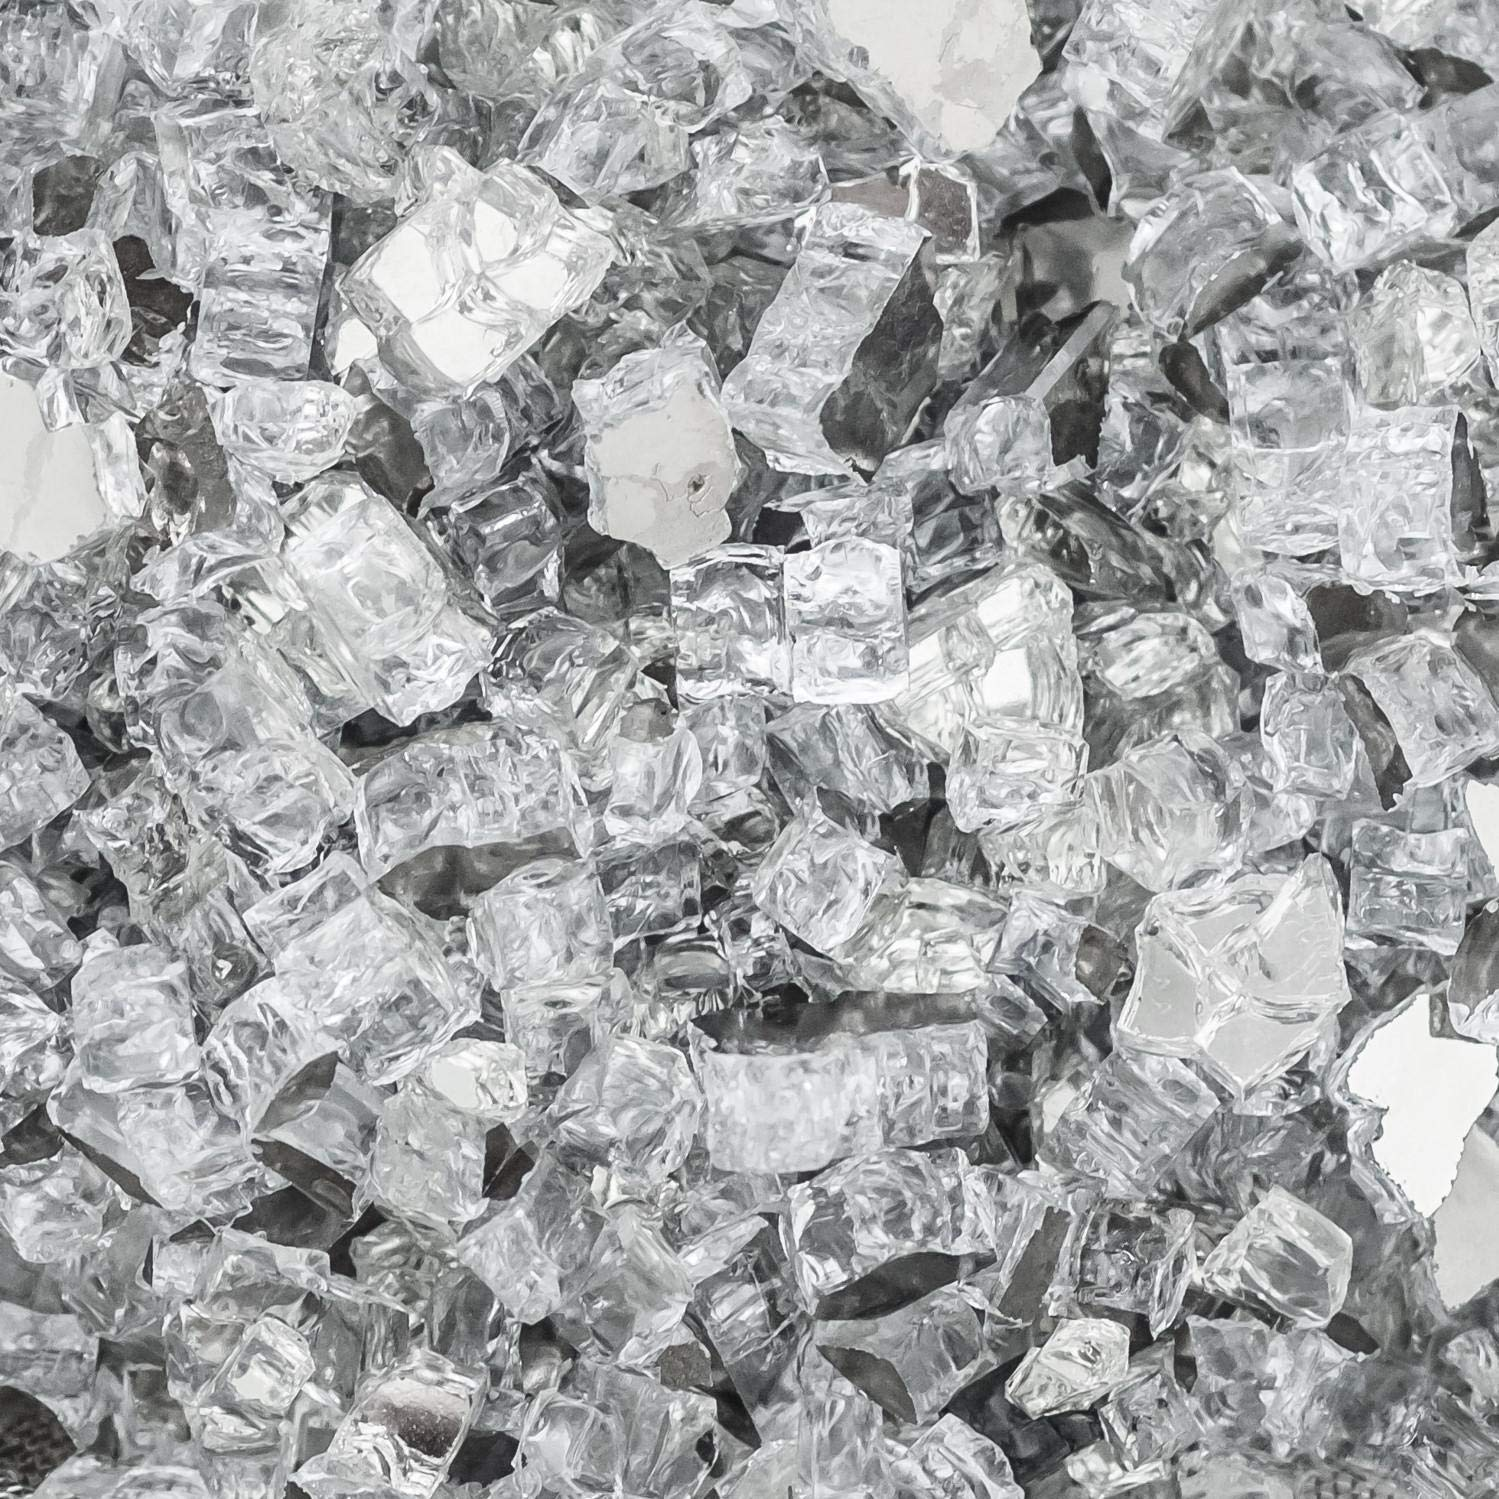 Lakeview Outdoor Designs 1/2-Inch Diamond Clear Reflective Fire Glass - 1 Pound